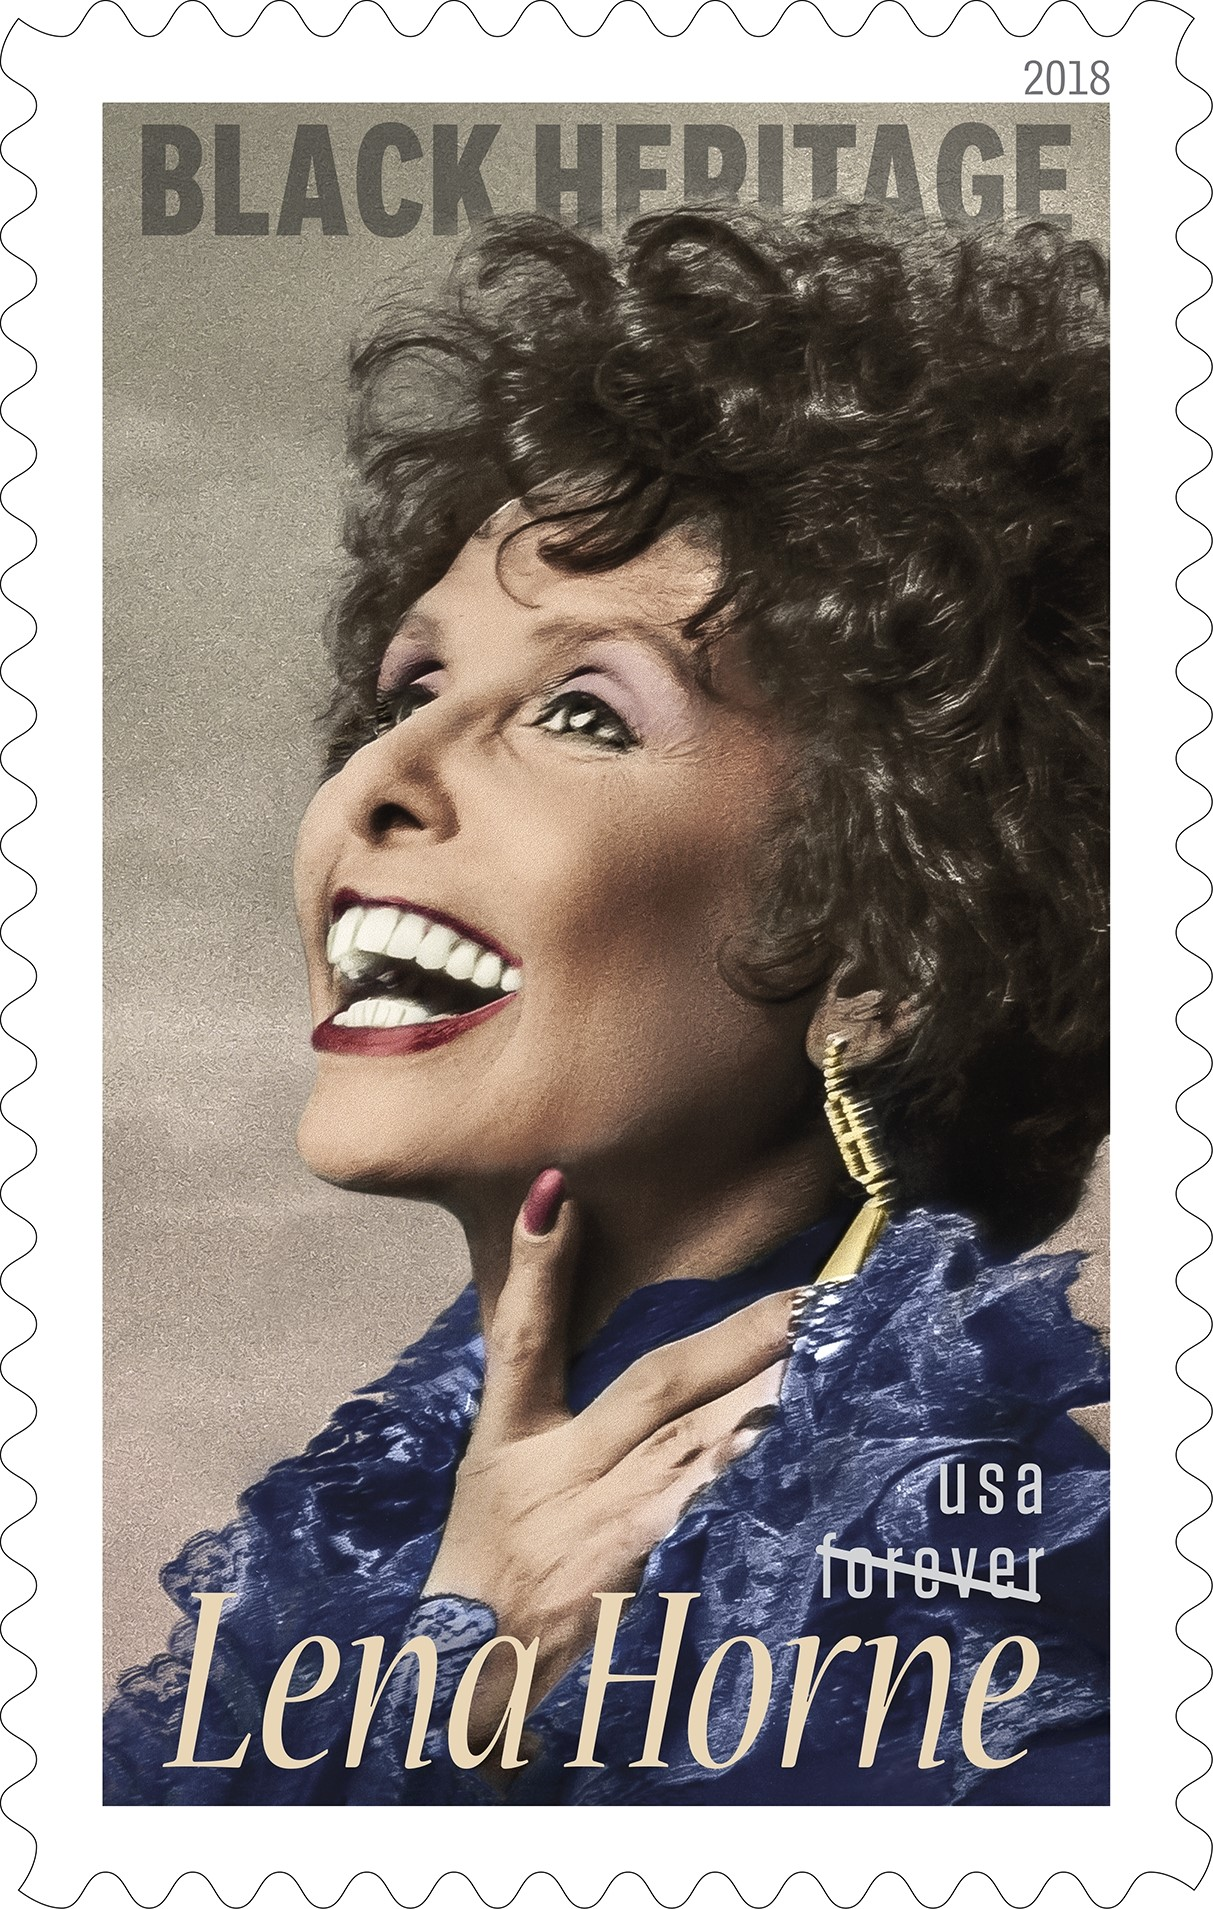 United States - January 30, 2018: Lena Horne - (50 cent) Forever commemorative stamp